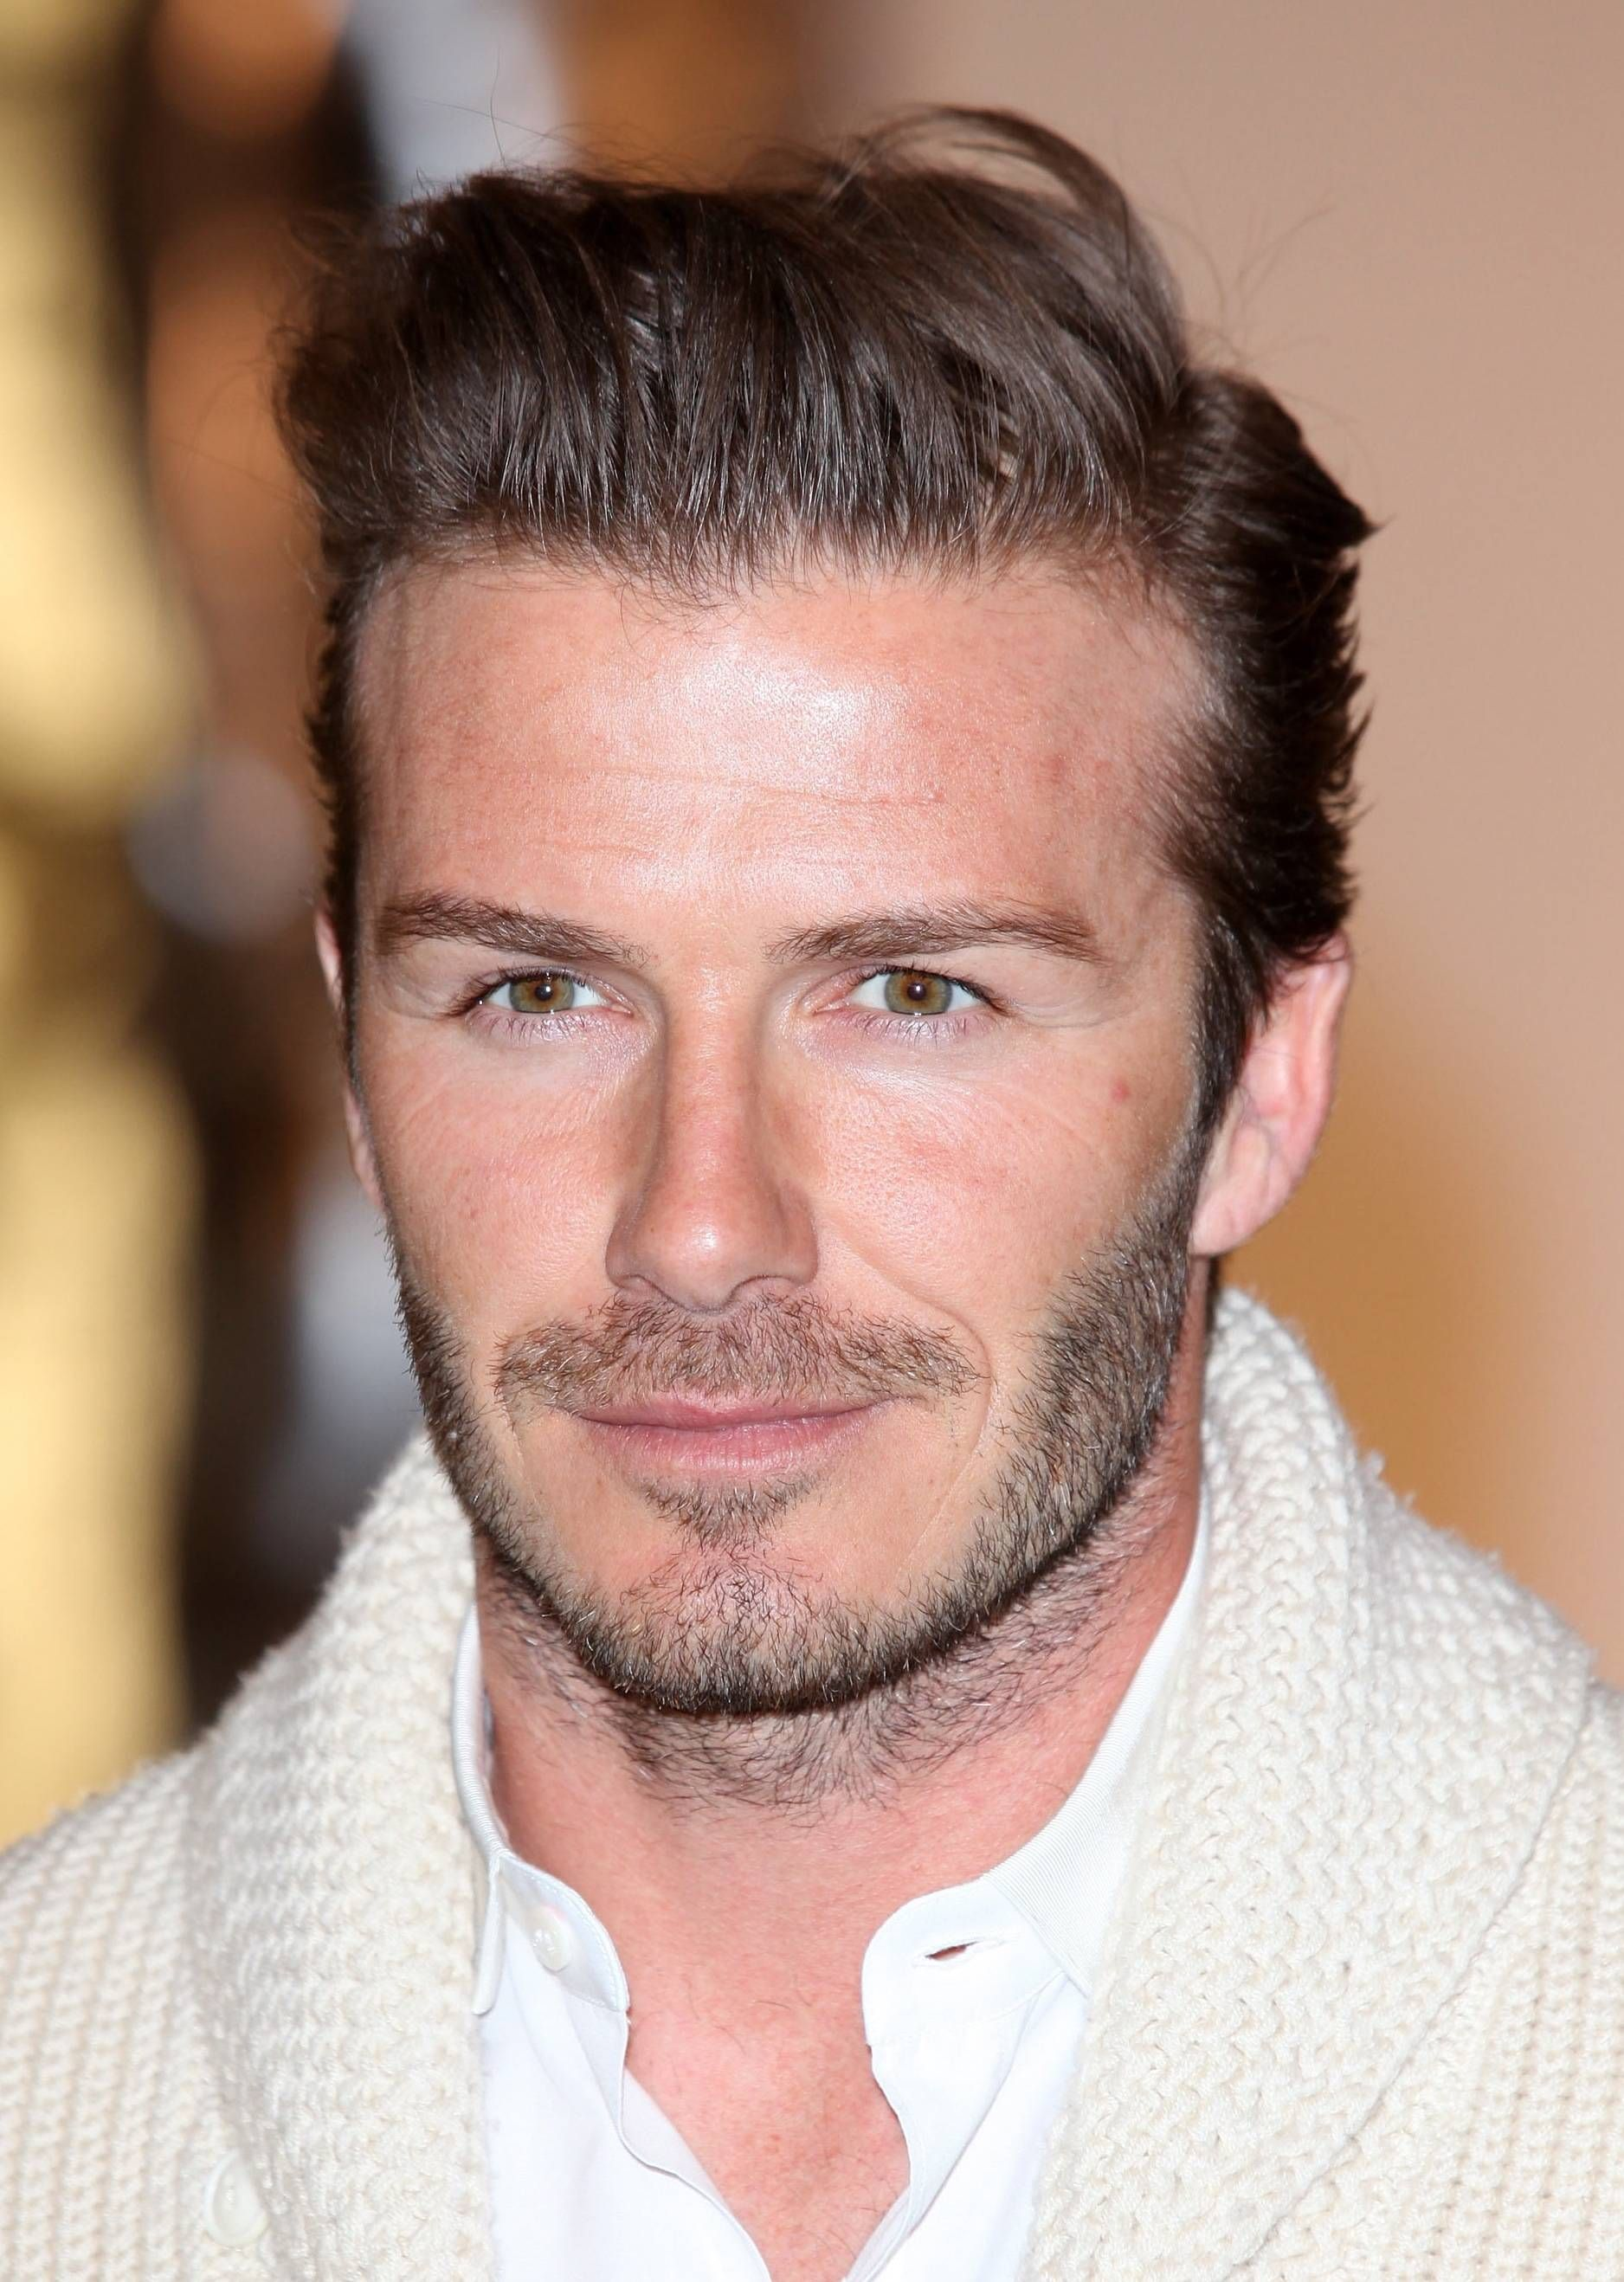 12 Facial Hair Trends for Men | Beckham and Male face